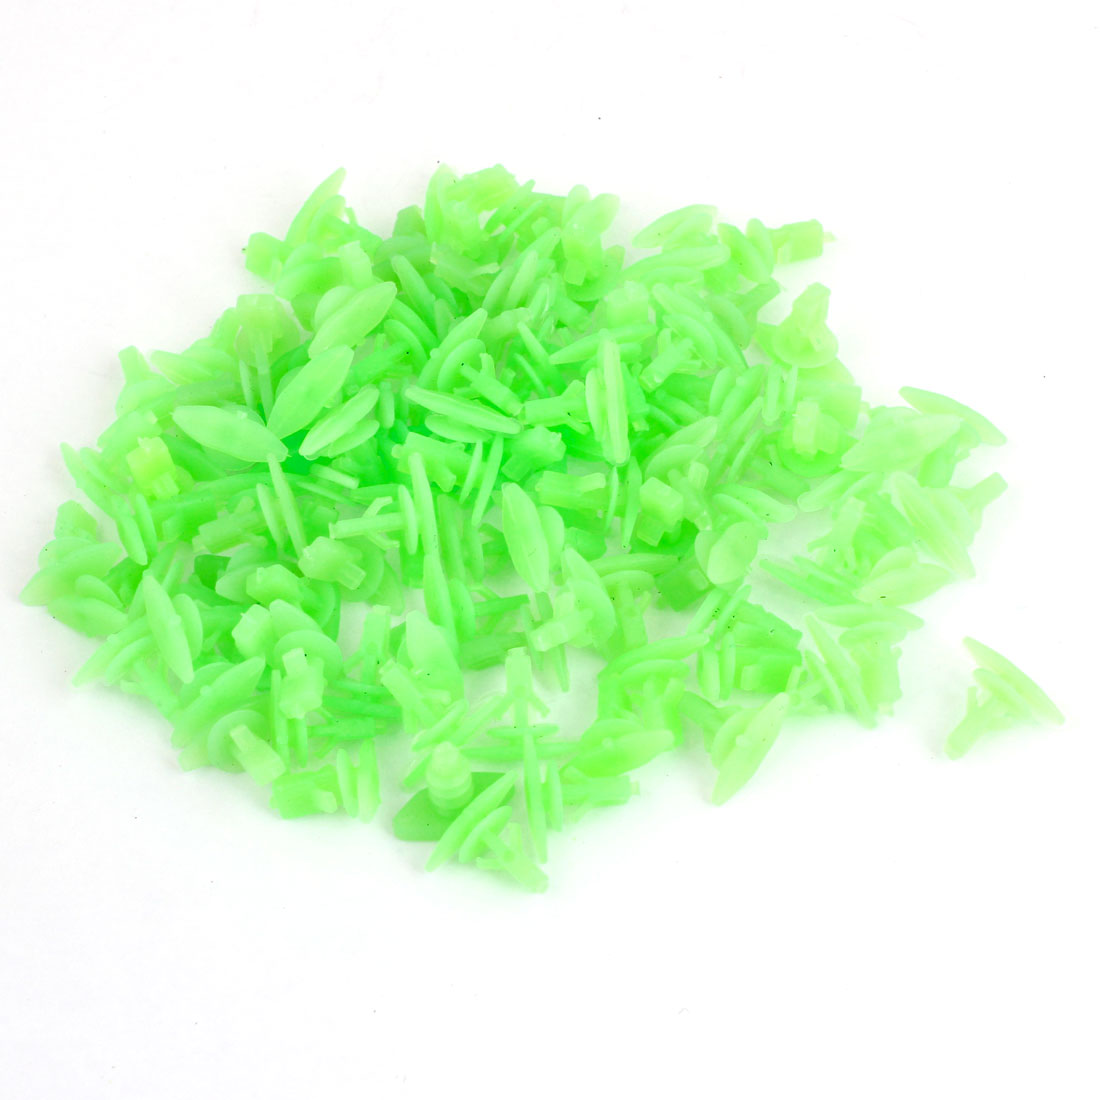 100 Pcs Vehicle 14.5mm Hole Green Door Plastic Replacement Rivets Fasteners